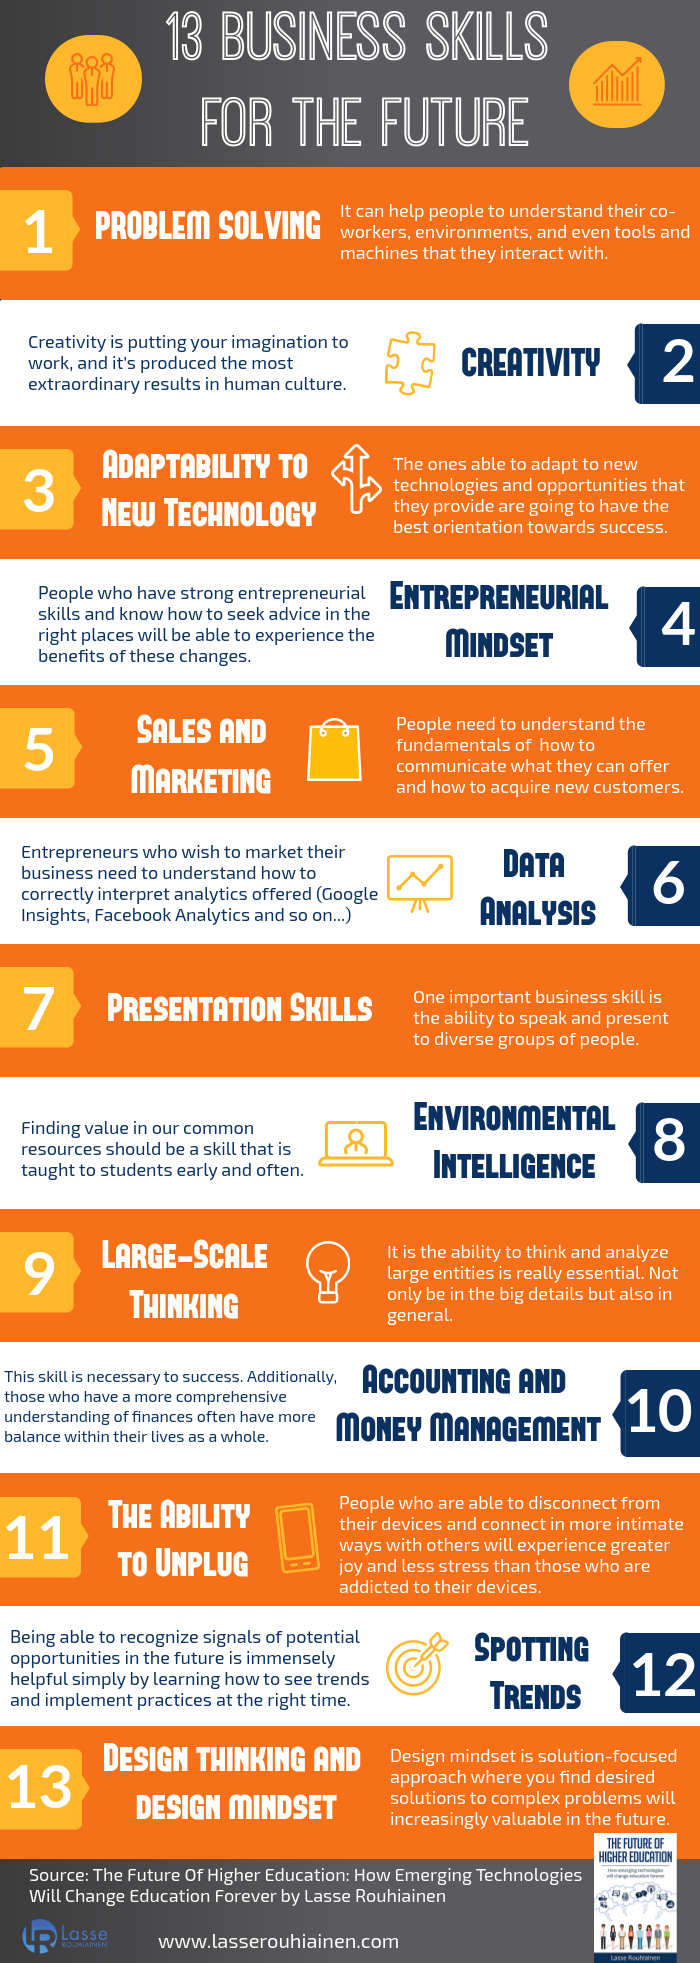 13 Business Skills For The Future